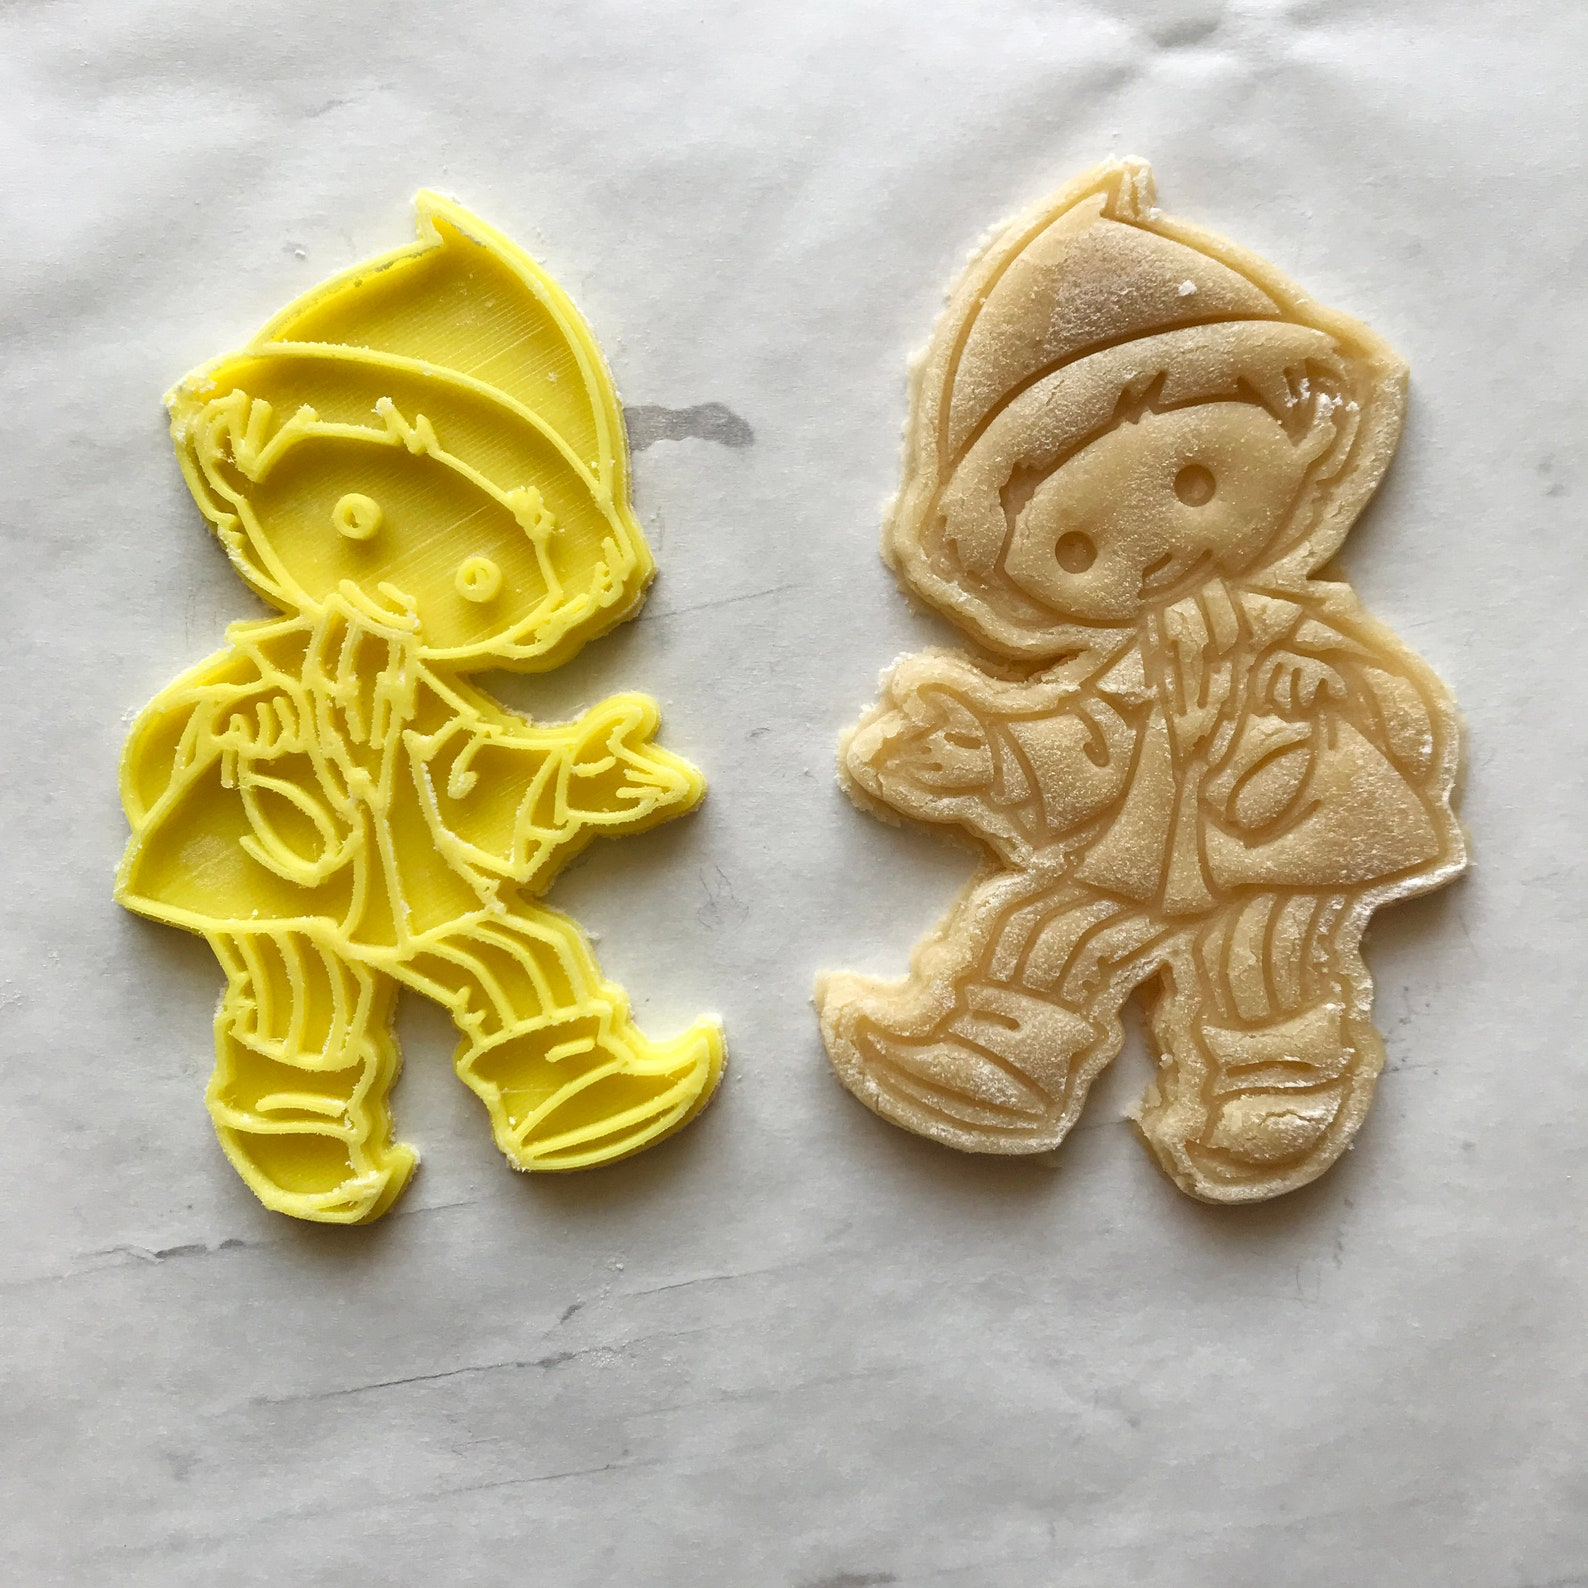 Sandman cookie cutter. Sandmännchen cookie stamp